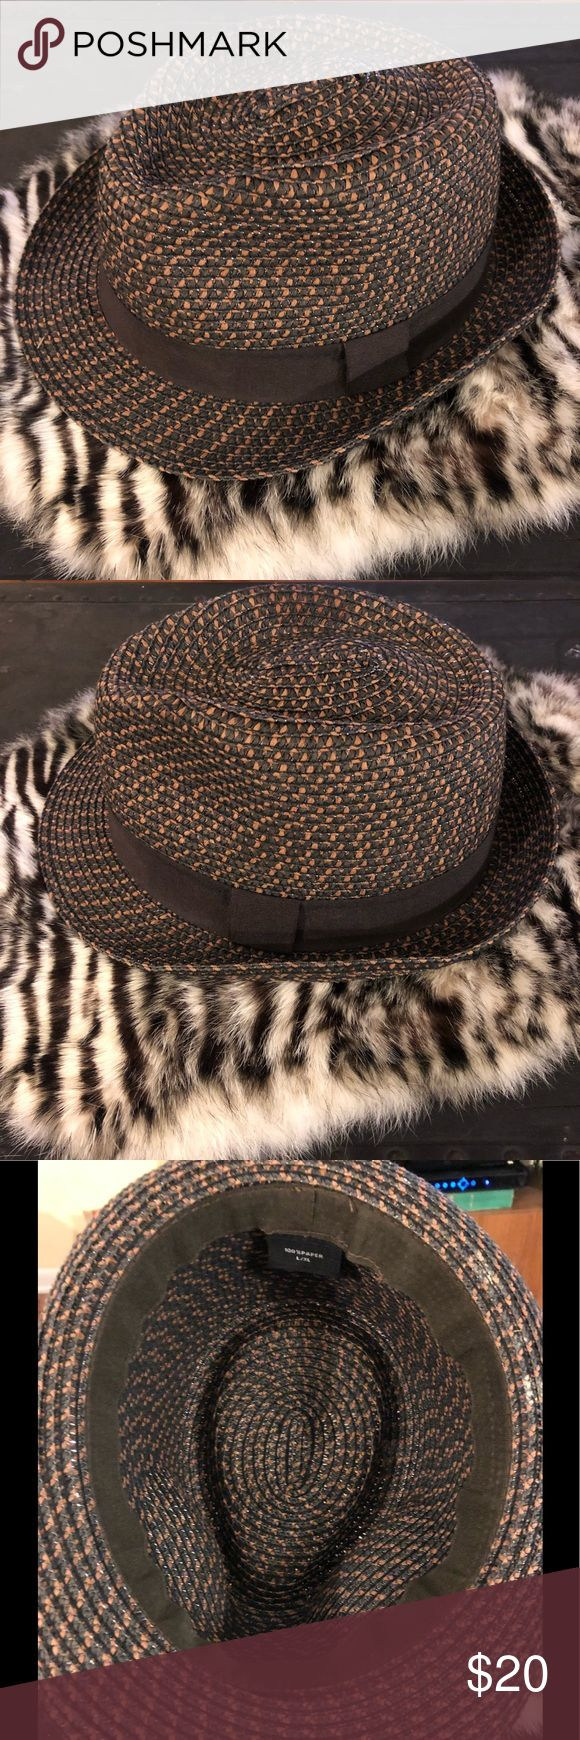 Brown & Tan Check Straw Fedora size L/XL Brown and Tan Check Straw Fedora Hat size L/XL! Great condition!  Please make reasonable offers and bundle! Ask questions :) Accessories Hats